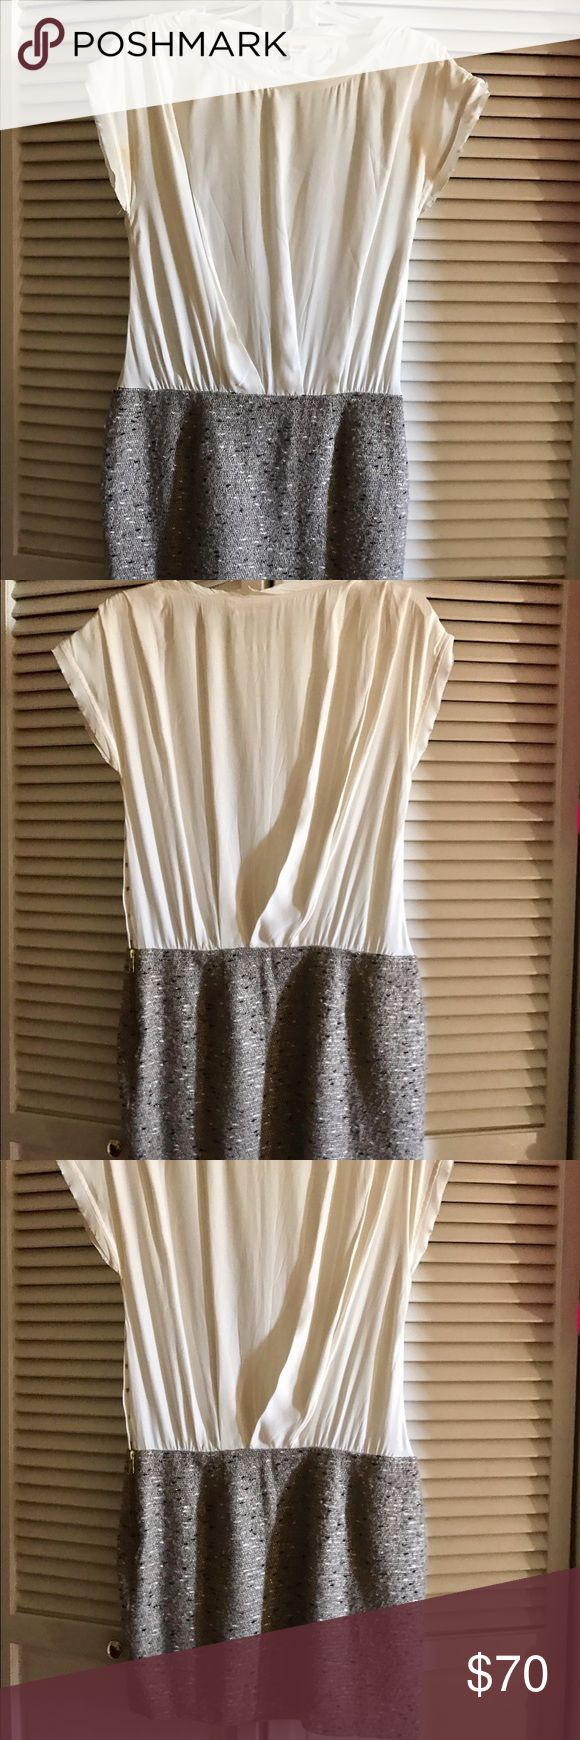 Rebecca Taylor Cream Silk and Tweed Dress Size 2 Rebecca Taylor cream and white silk top form fitted around the waist with a flattering gray tweed bottom. Worn only once in excellent condition. Perfect outfit for work or a night out on the town. Rebecca Taylor Dresses Midi